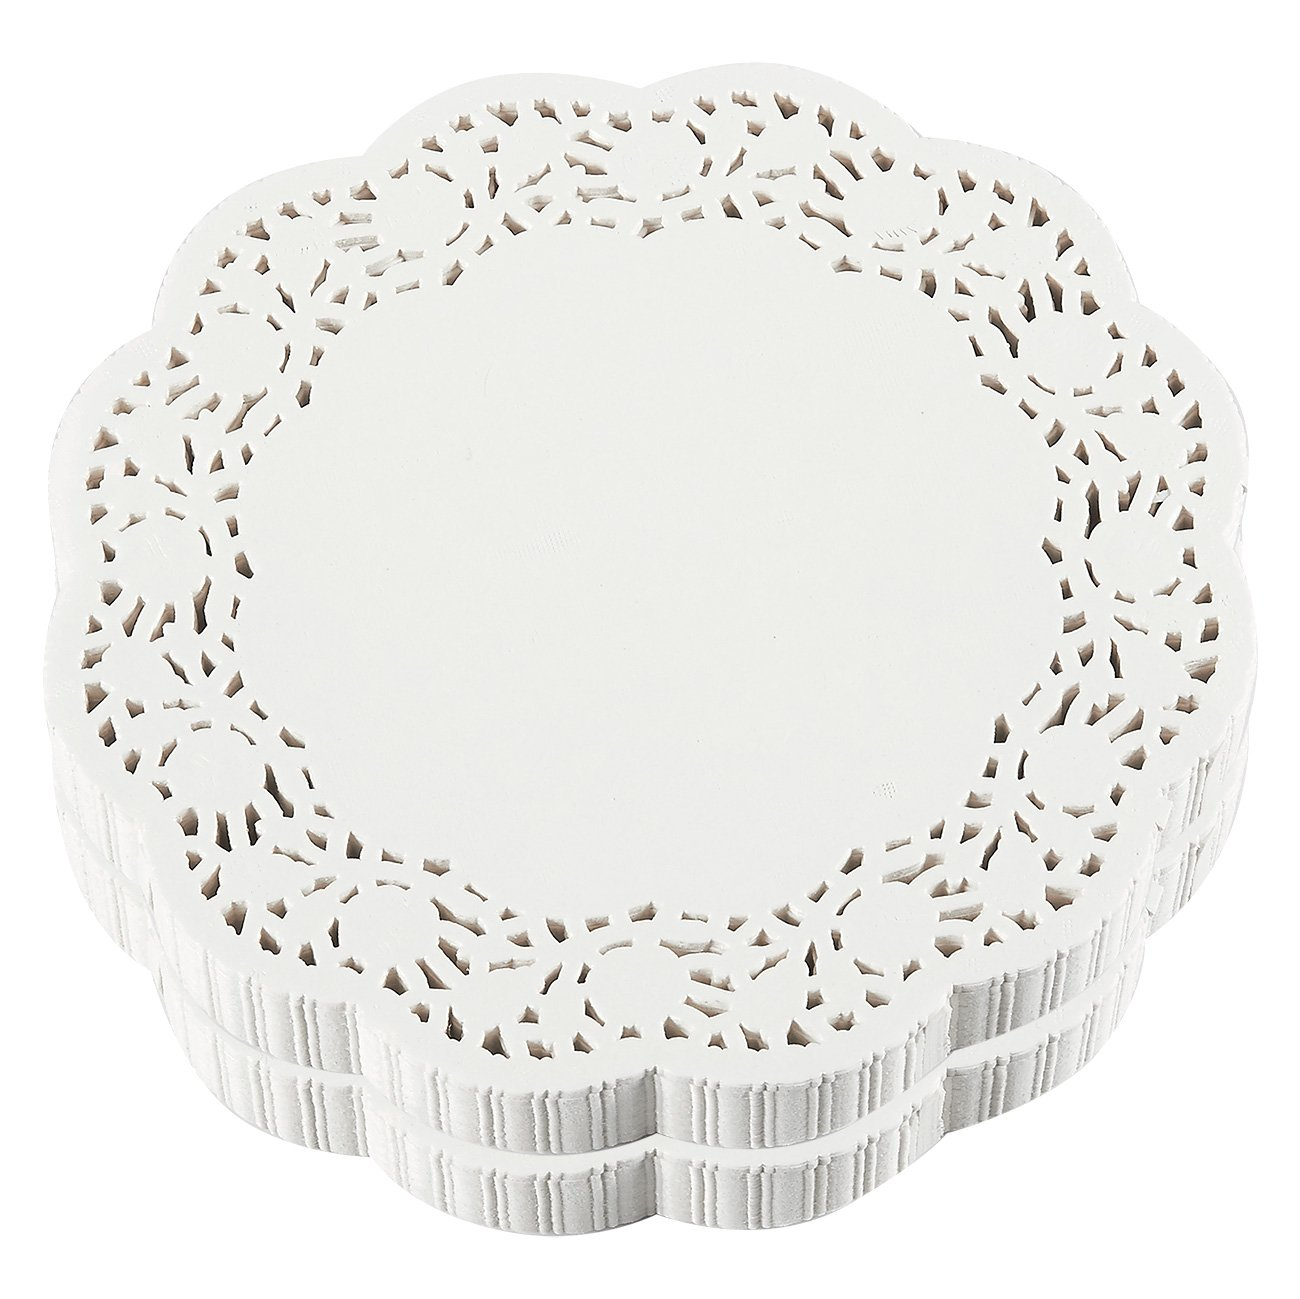 Paper Doilies – 500-Pack Bulk Round Lace Placemats for Cakes, Desserts, Baked Treat Display, Ideal for Weddings, Formal Event Decoration, Tableware Décor, White - 8 Inches in Diameter